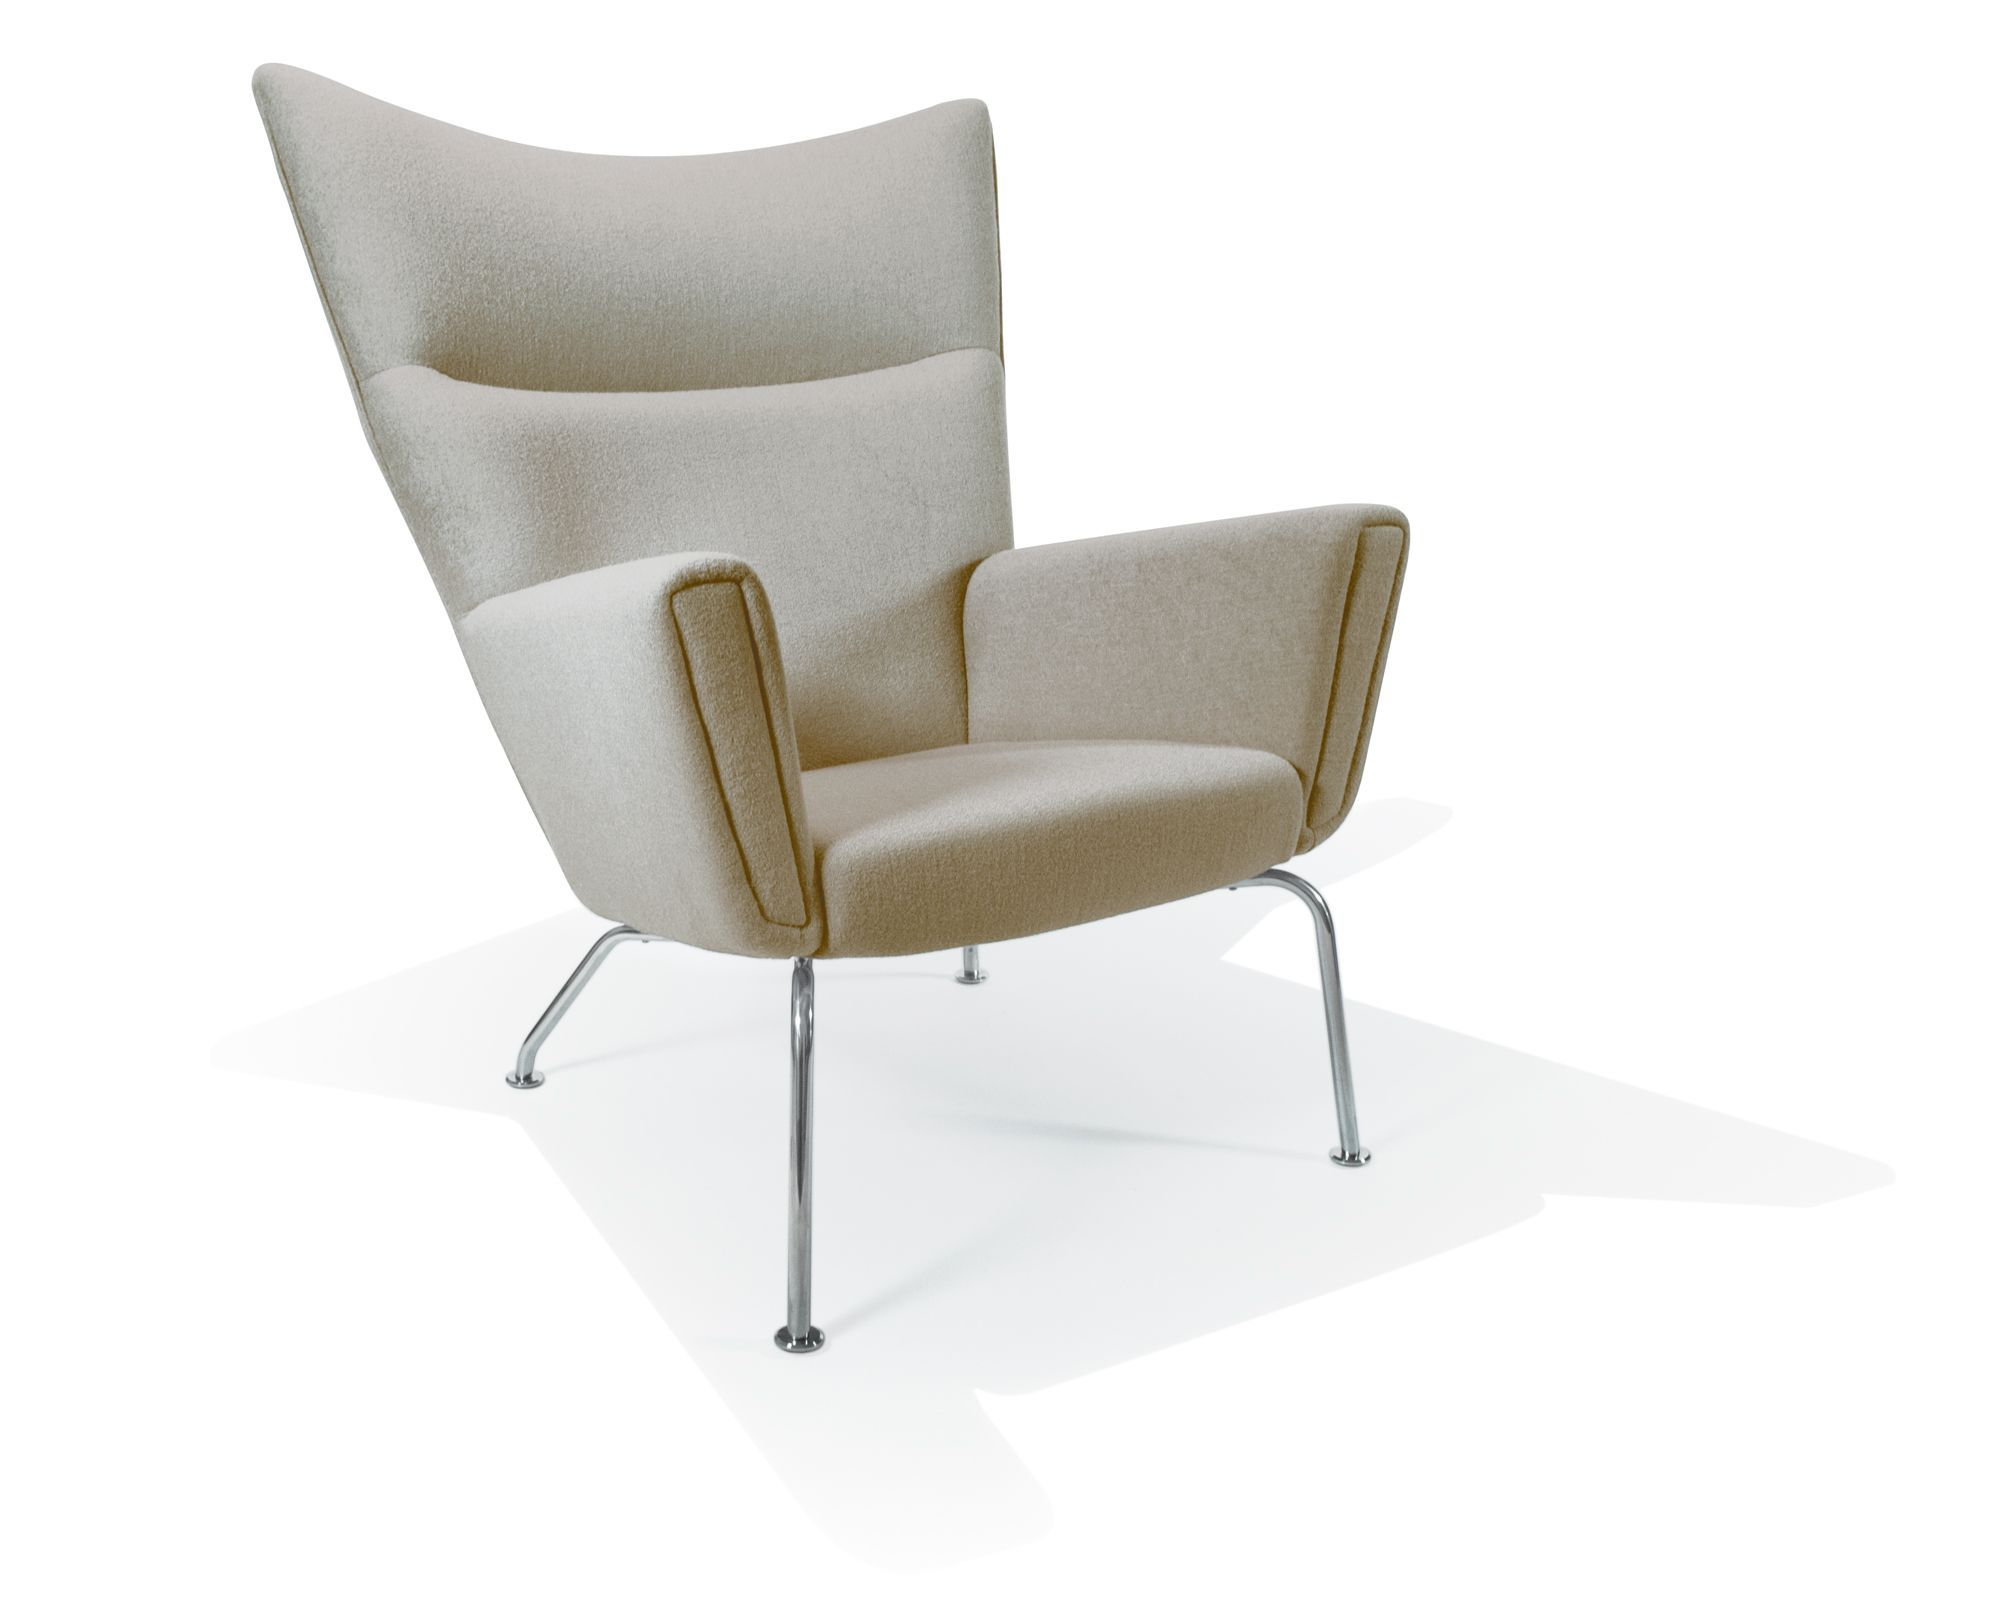 Rove Concepts Hans Wegner Wing Chair Is A High End Premium Reproduction  True To Original Specifications. Find Out Why Rove Concepts Is One Of The  Leading ...